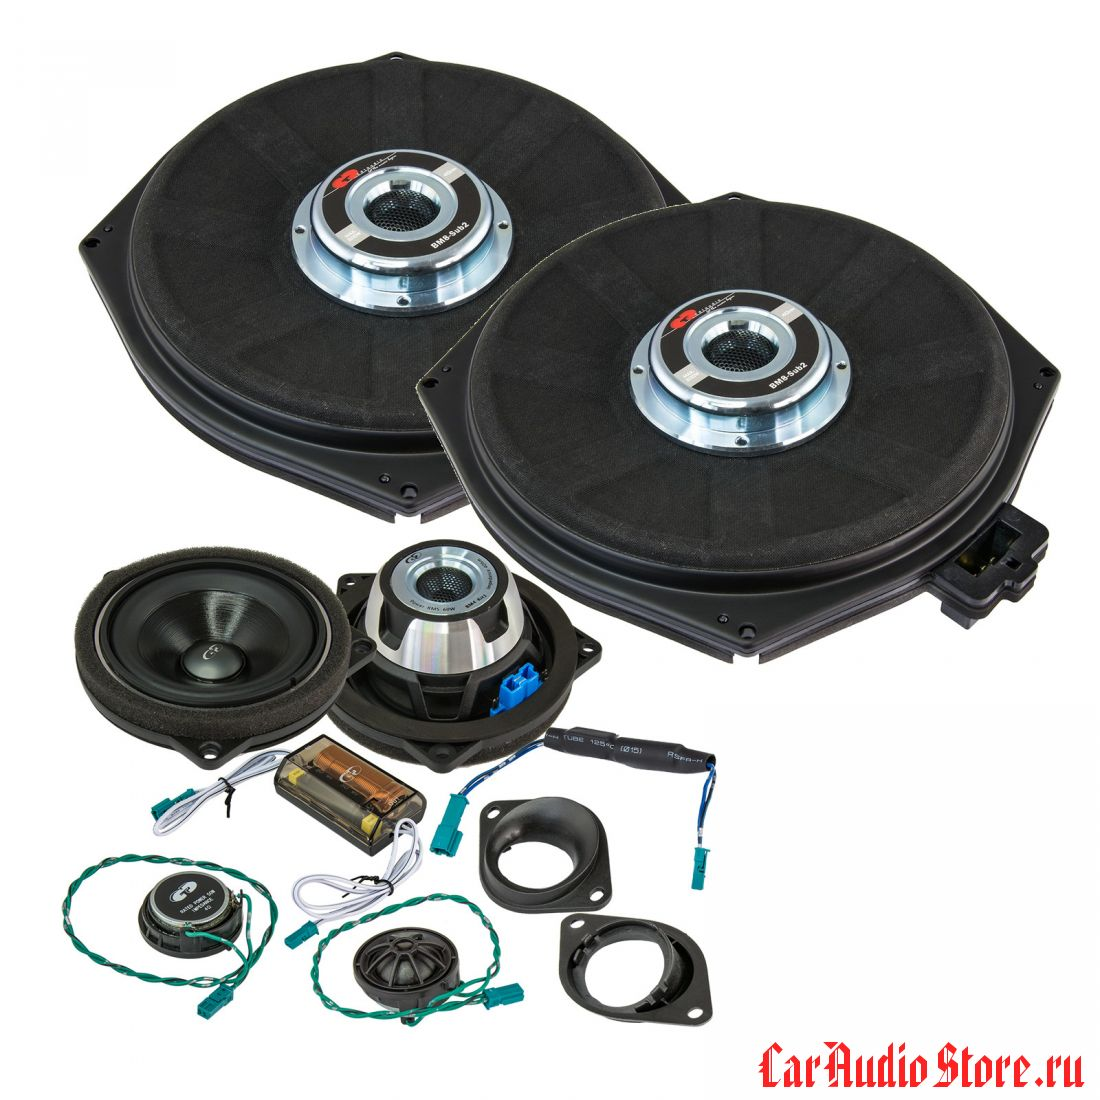 Base Kit CDT Audio 1